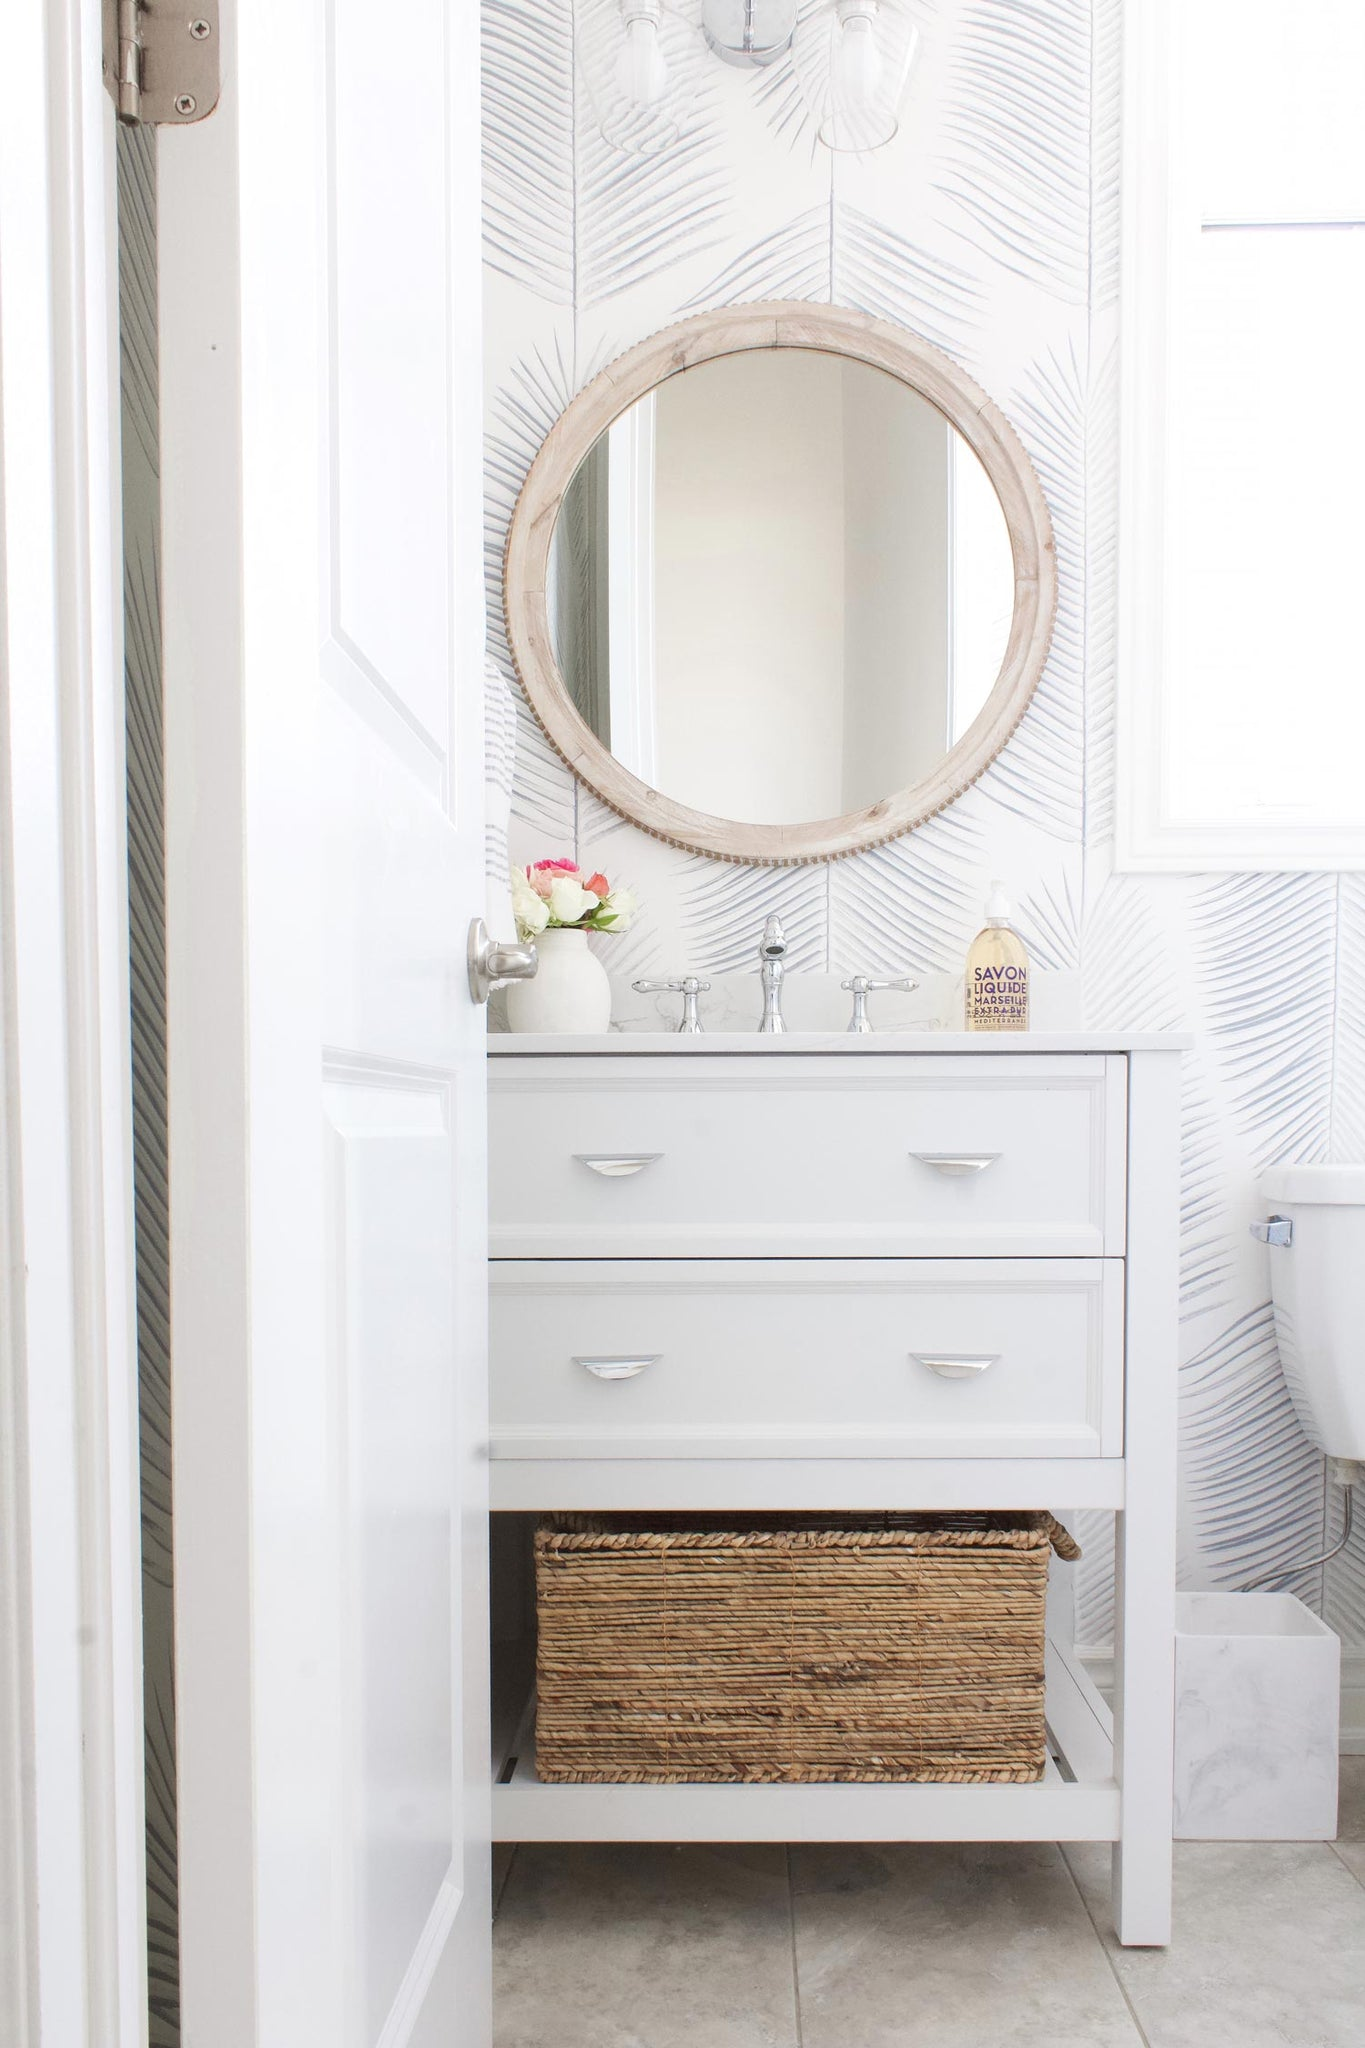 Coastal themed powder room remodel featuring traditional wallpaper with blue palm leave design